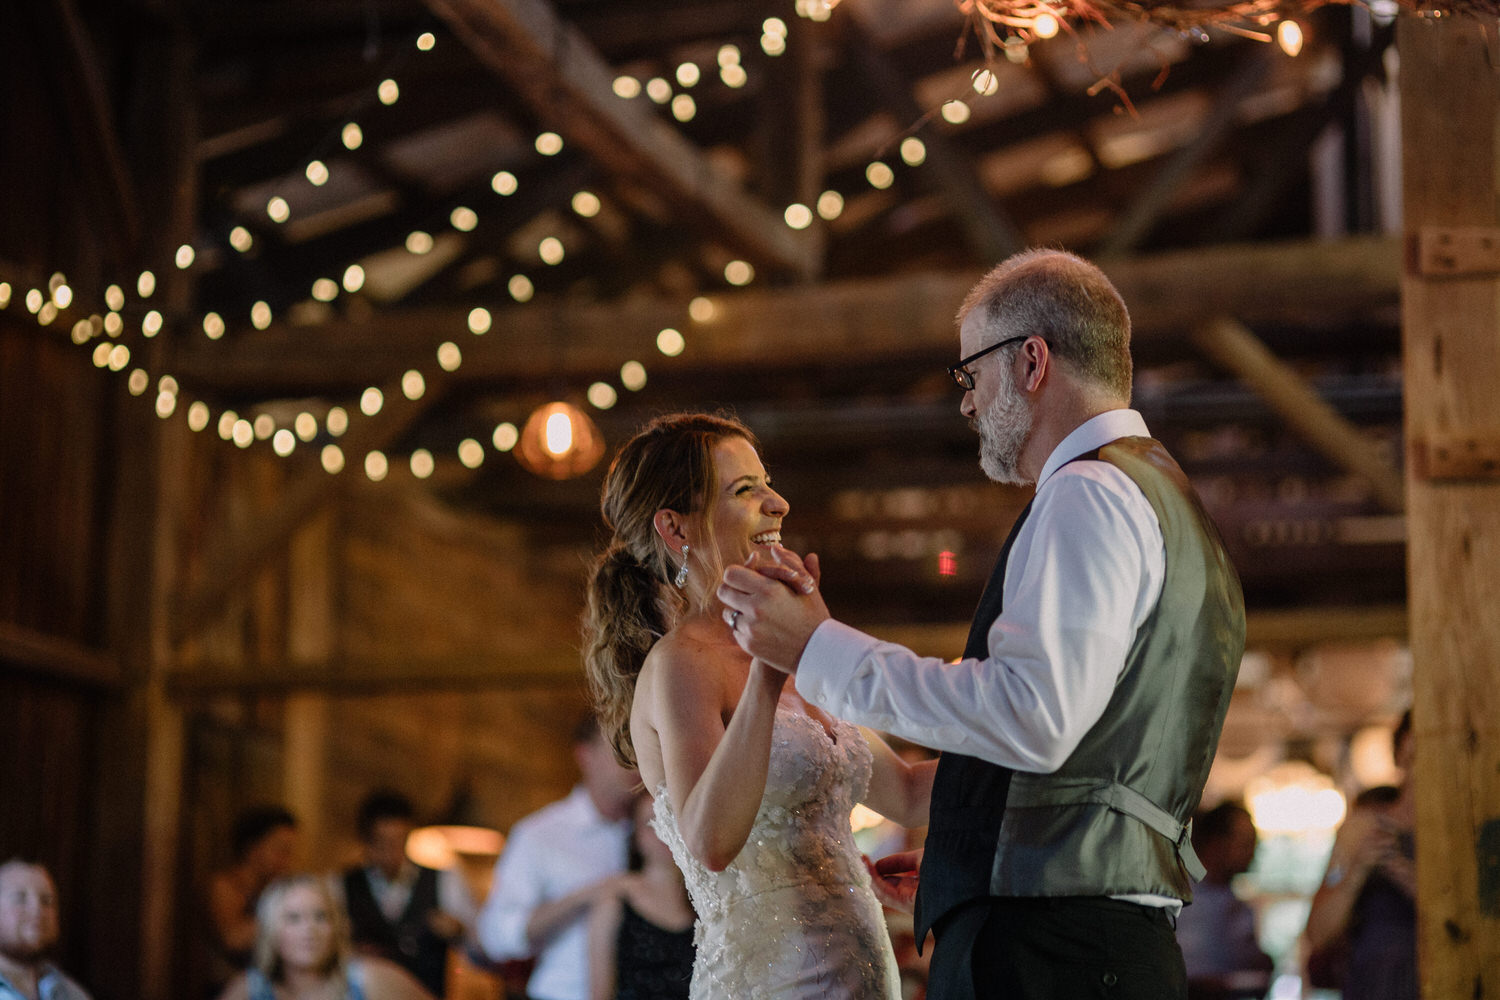 Millcreek barns michigan wedding0094.JPG